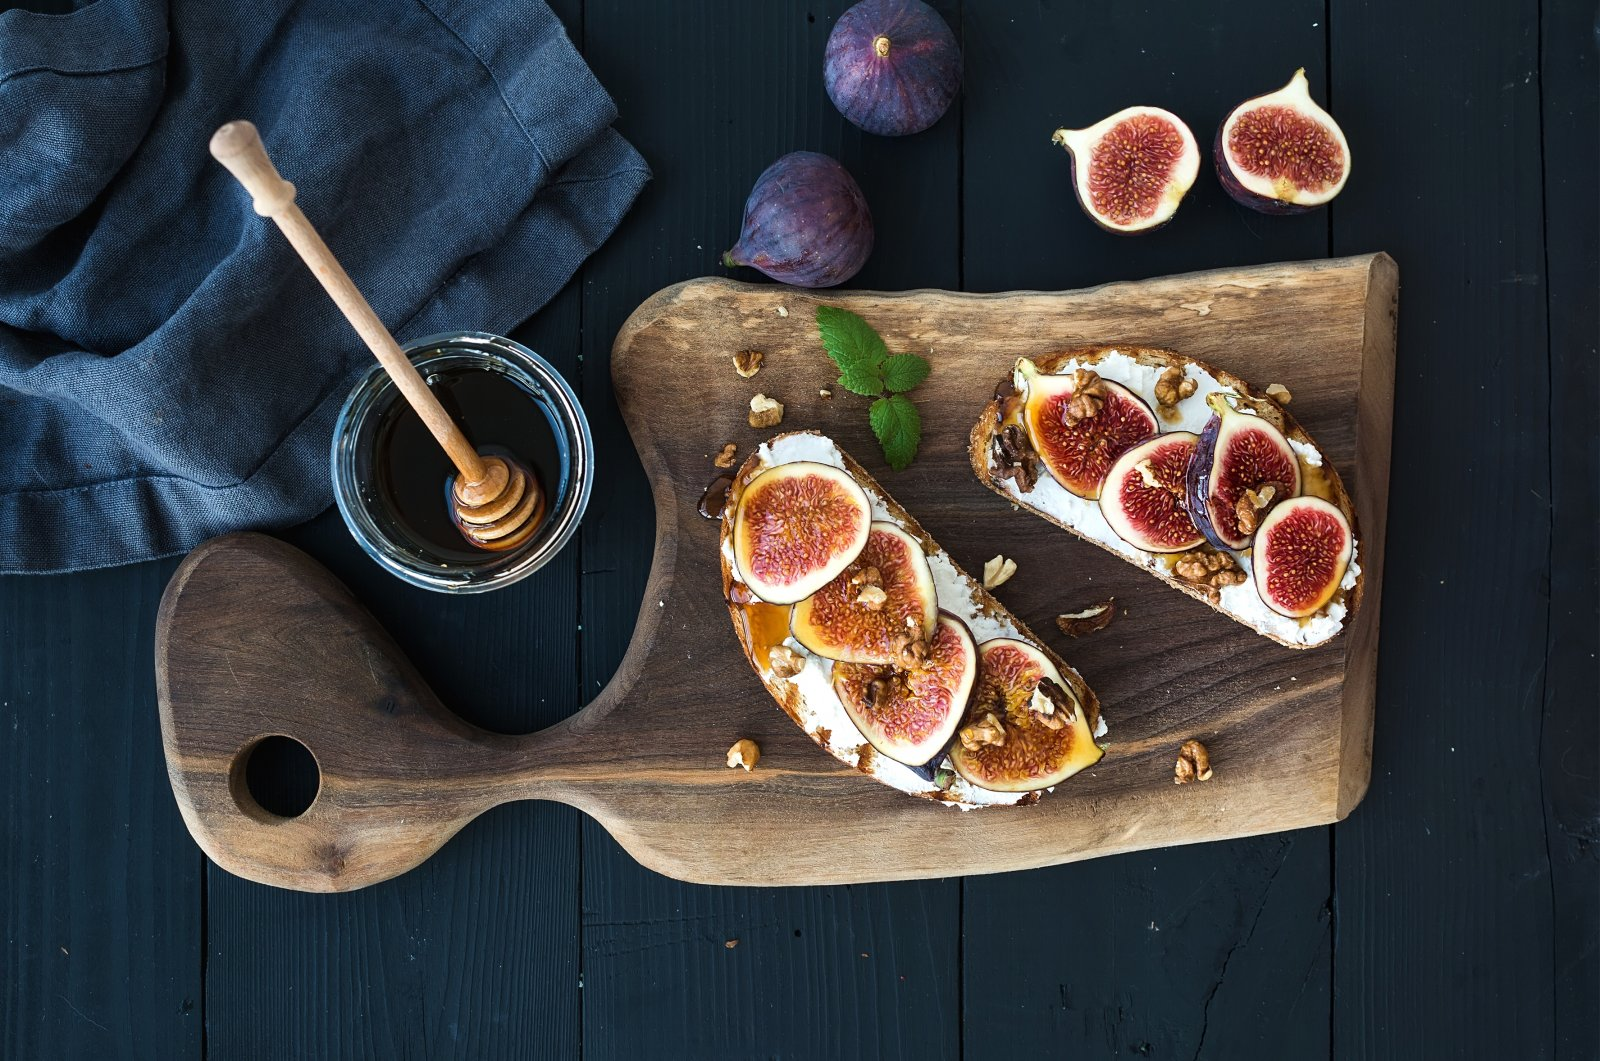 Ricotta, fresh figs, walnuts and honey go well on some homemade sourdough bread. (iStock Photo)